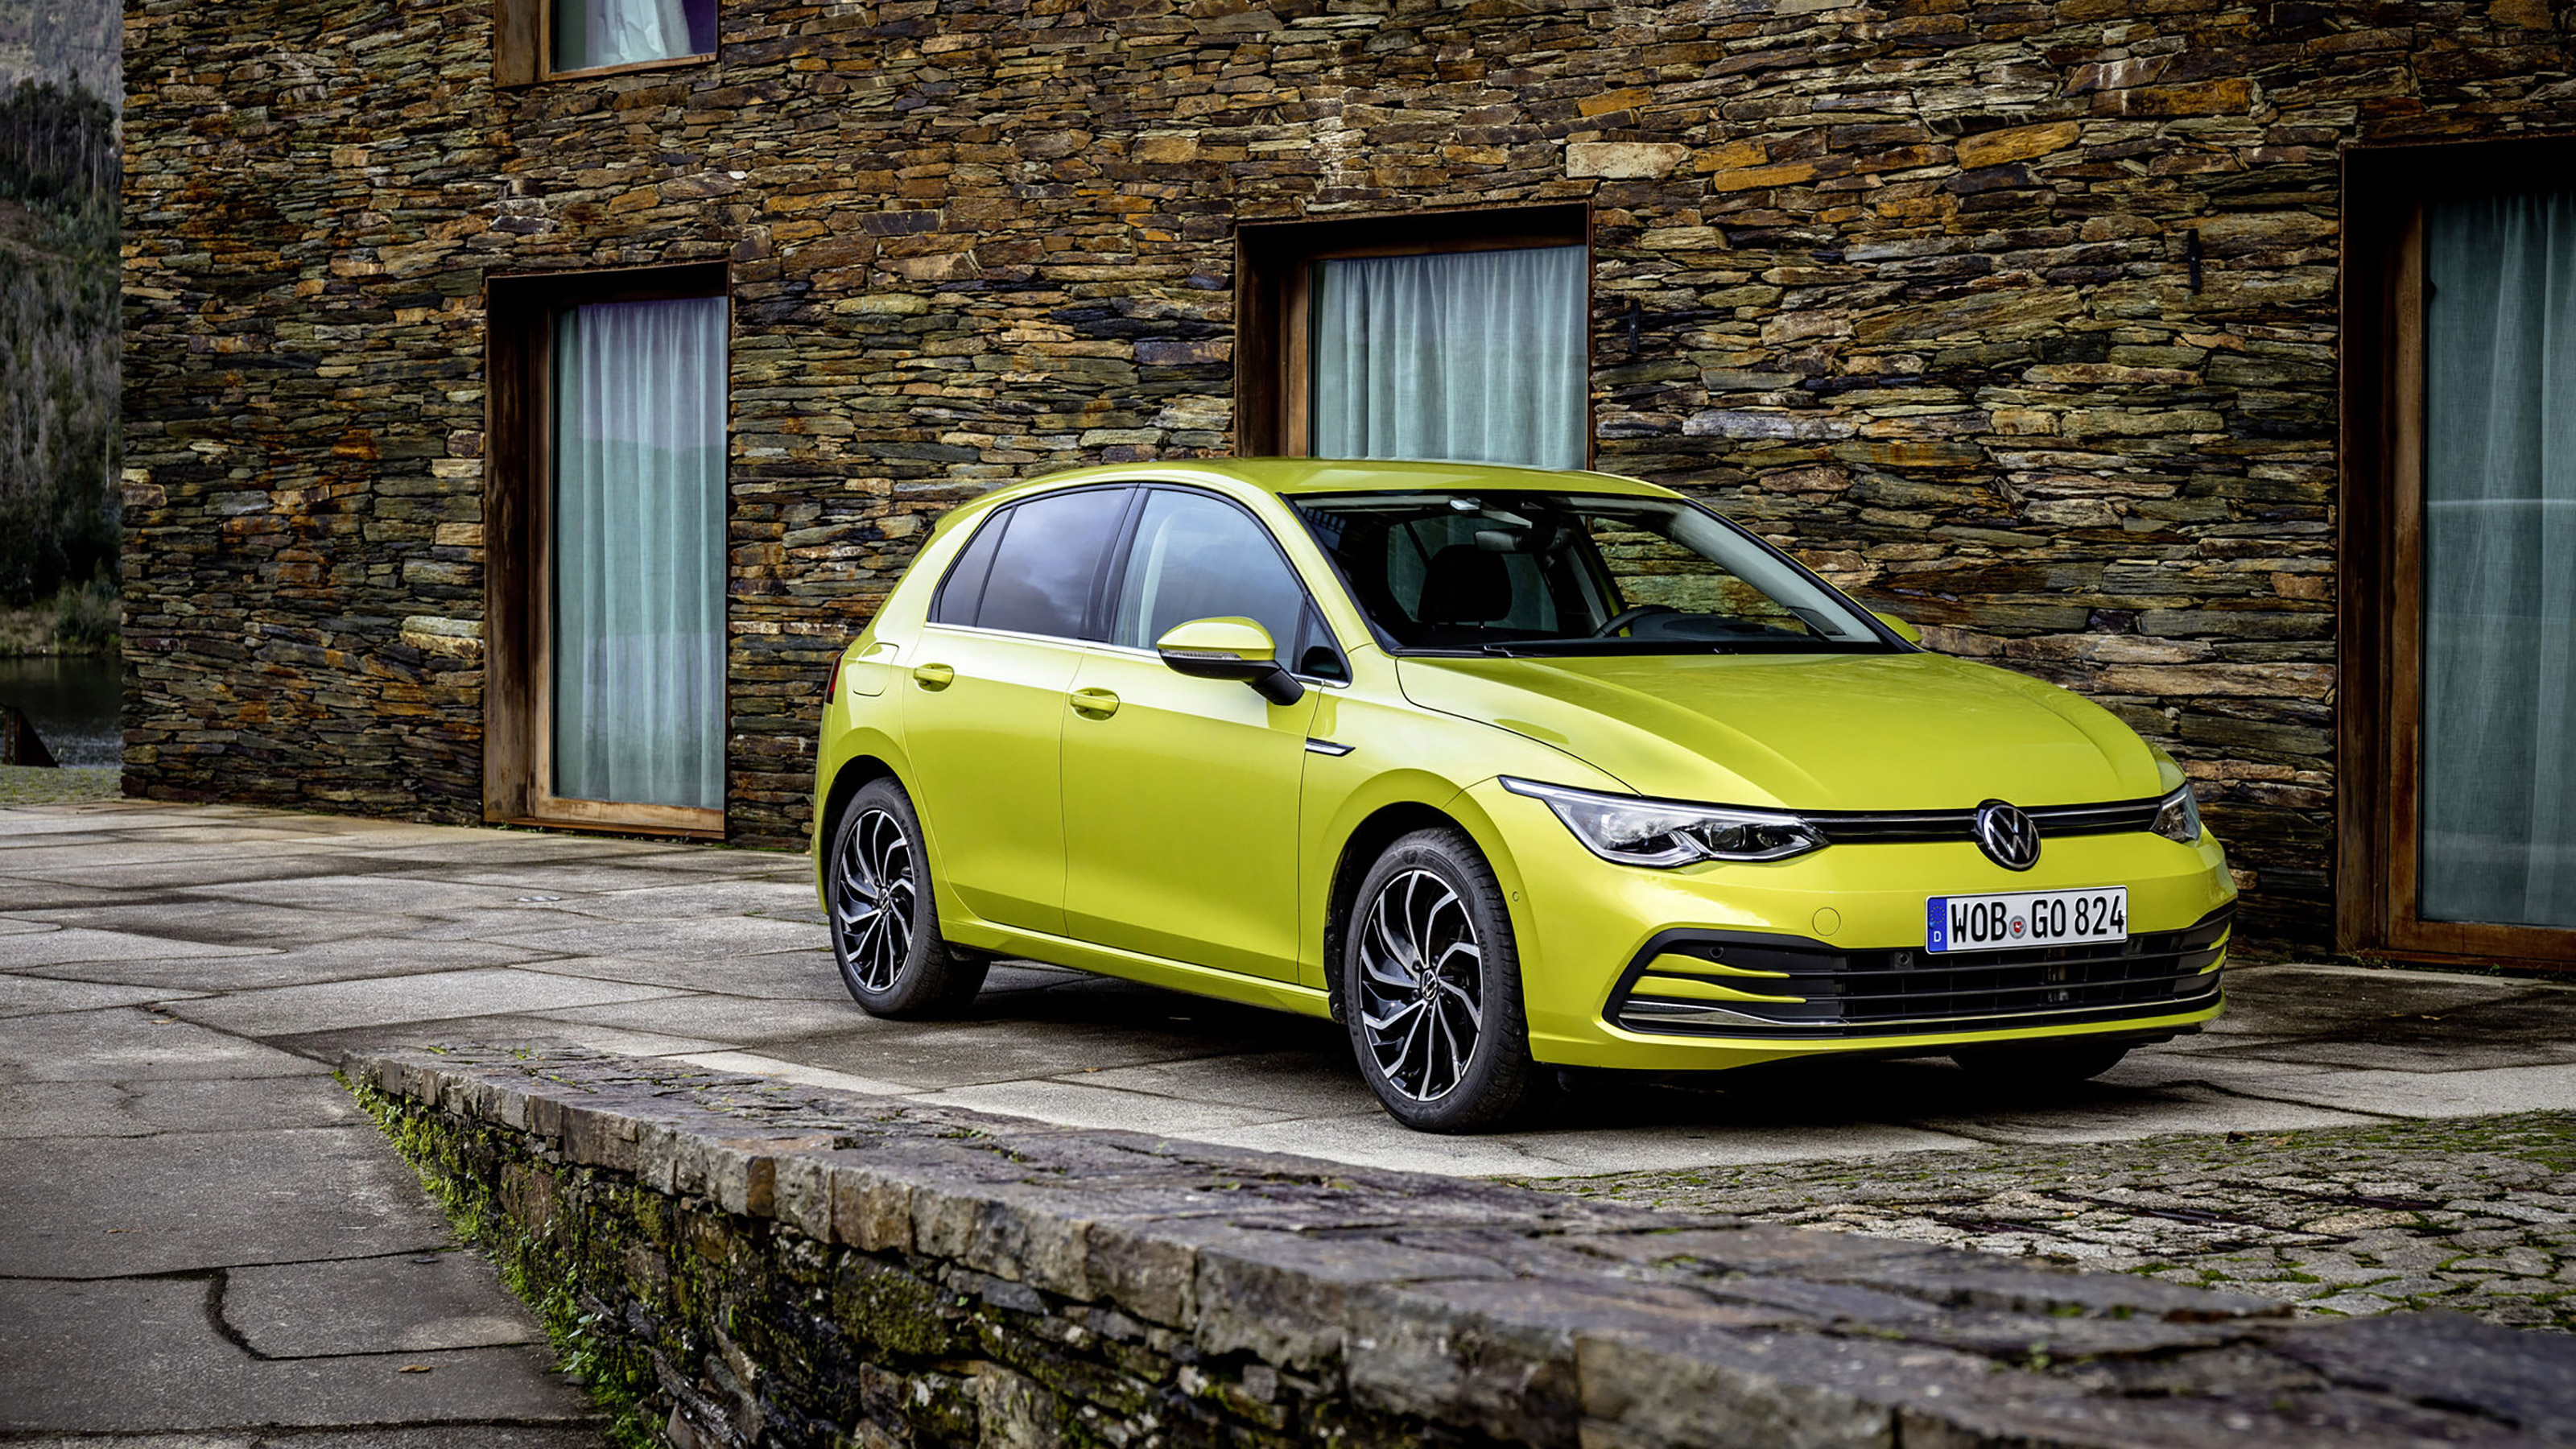 New 2020 Volkswagen Golf Mk8 Pricing And Specs Revealed Evo